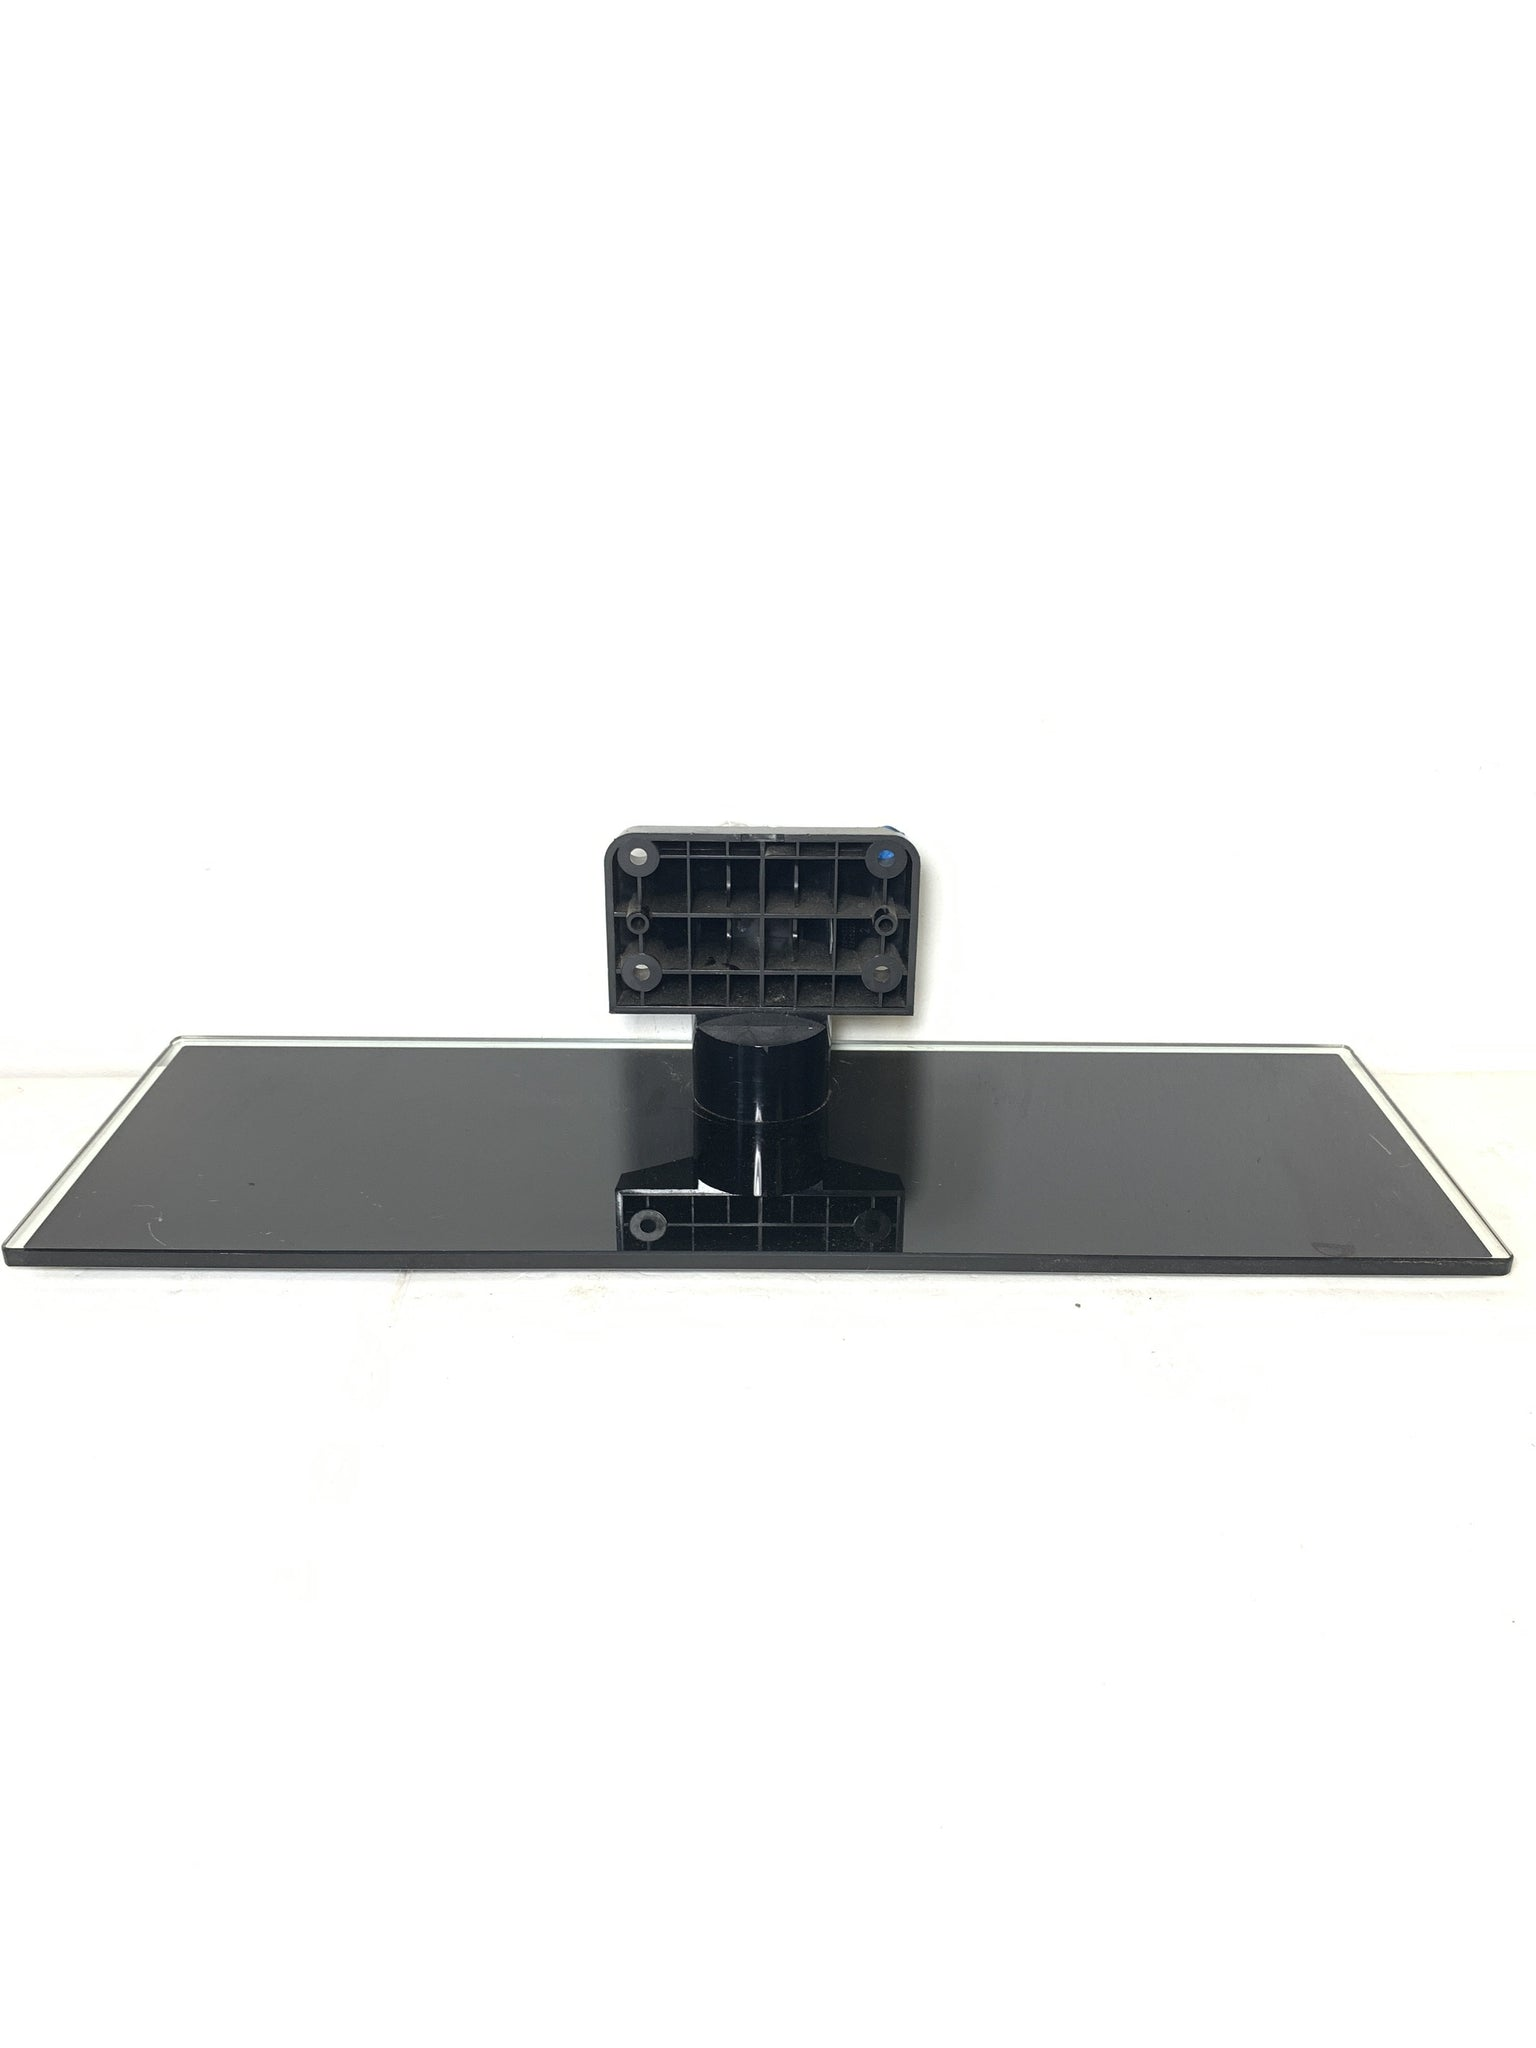 Sanyo DP39D14M TV Stand/Base